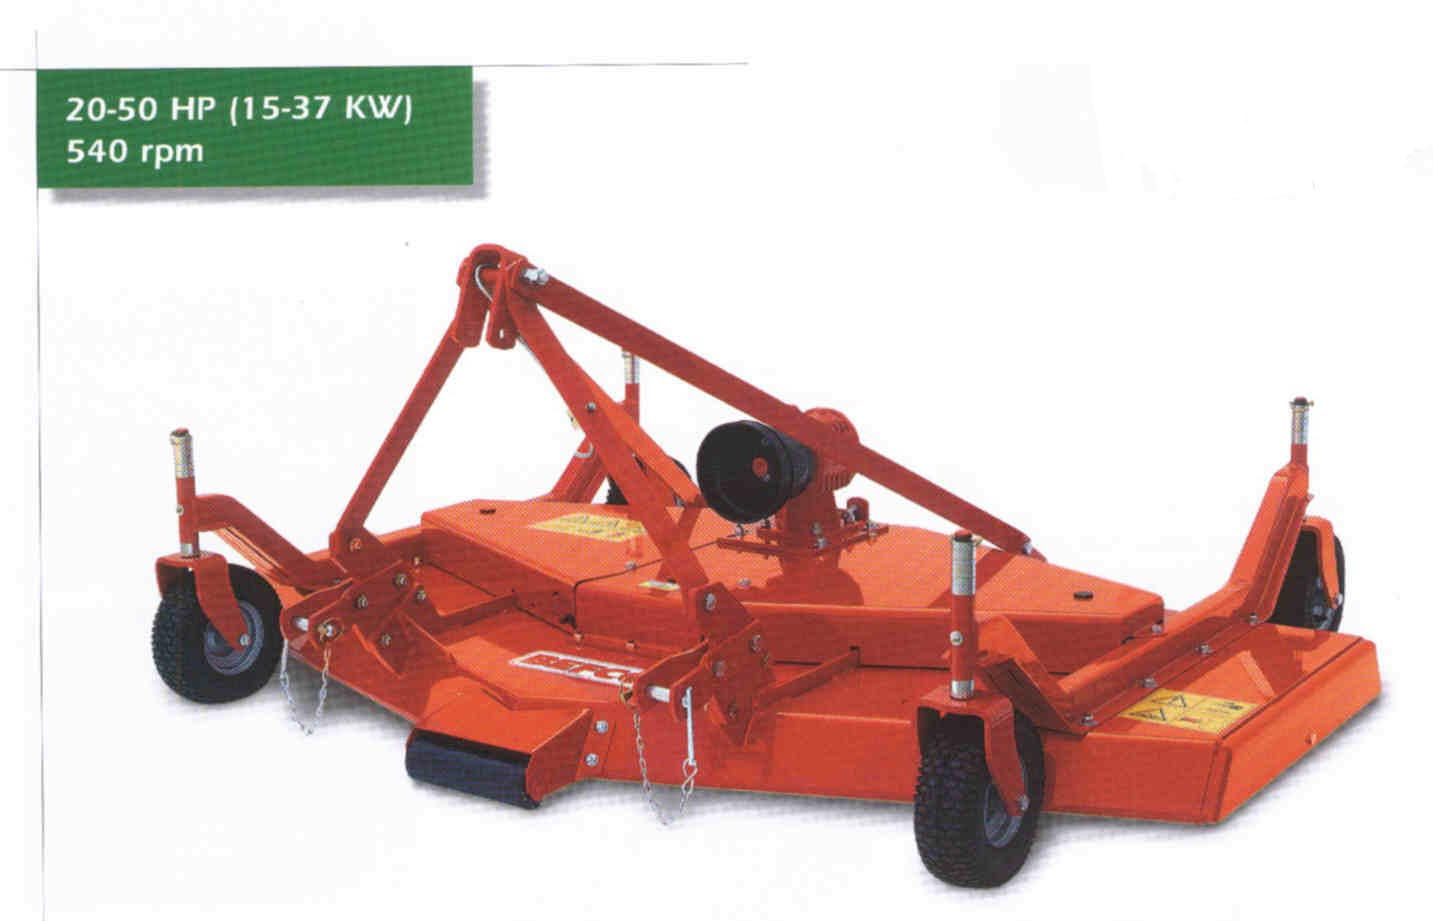 Cyclone C50 RD Mower